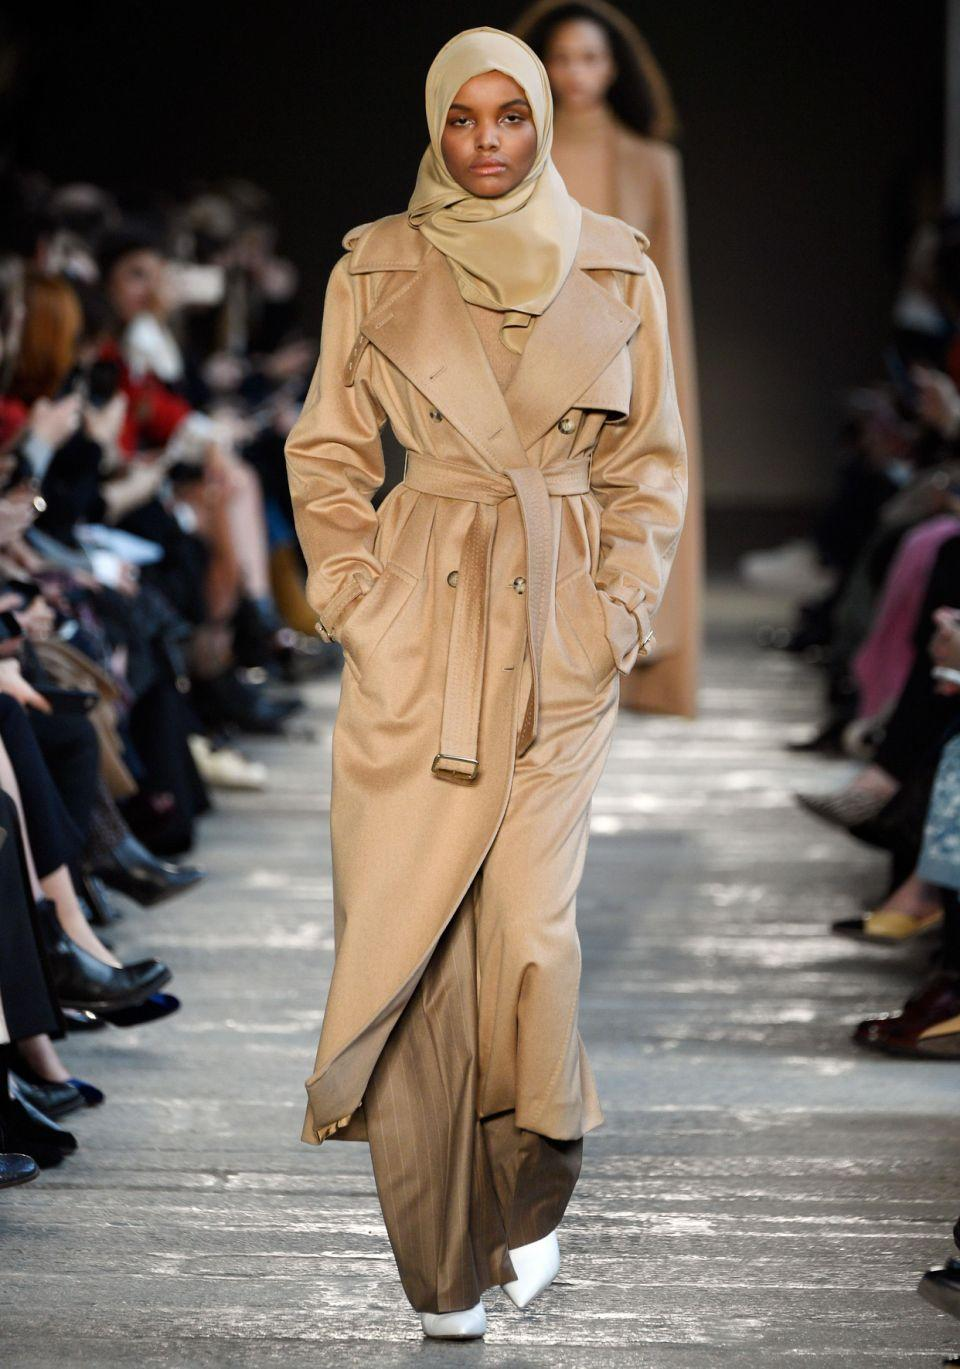 Ajak also suggests Somali-American Halima Aden, who was the first model to wear a hijab for several catwalks and high-end fashion campaigns. Source: Getty